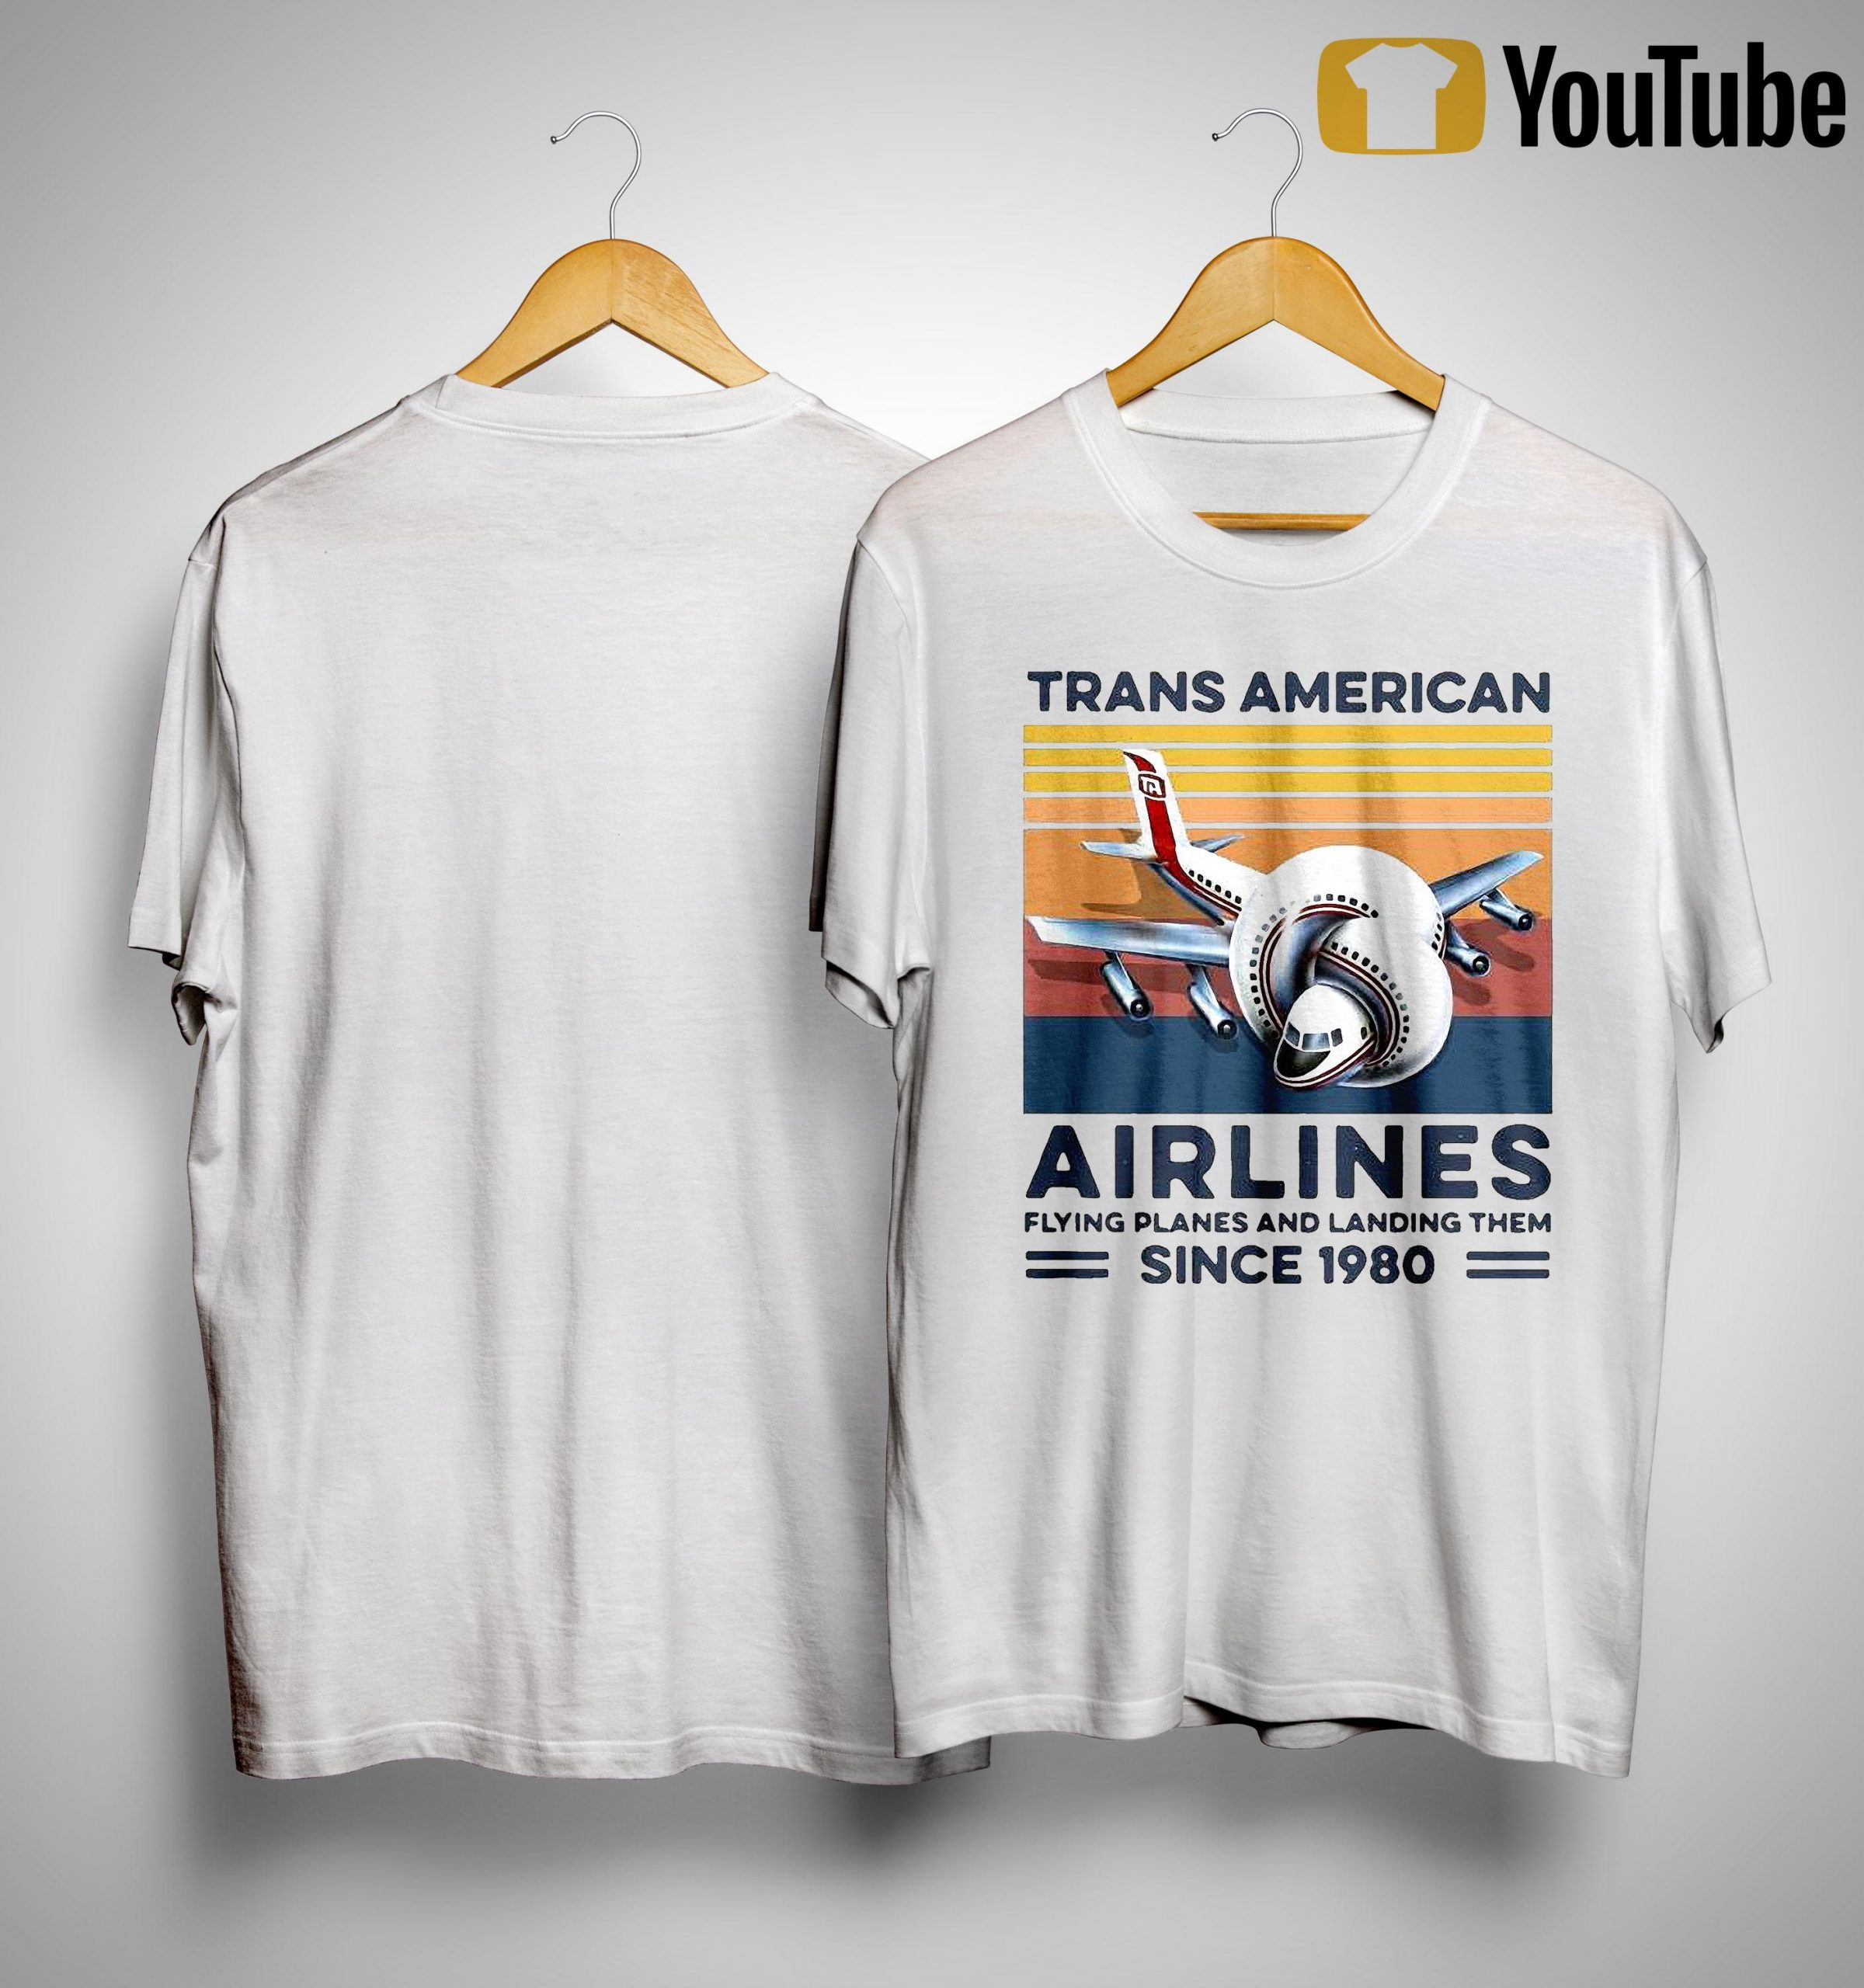 Vintage Trans American Airlines Flying Planes And Landing Them Since 1980 Shirt